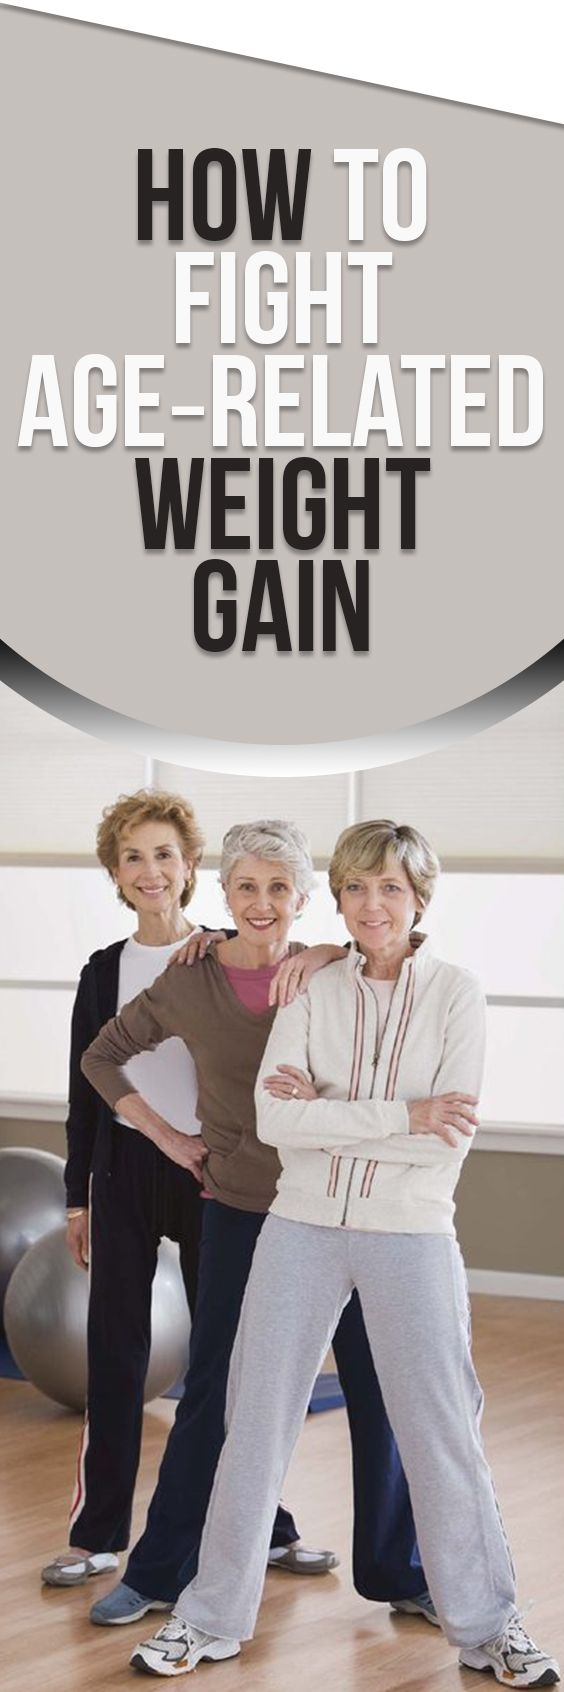 How to Fight AgeRelated Weight Gain